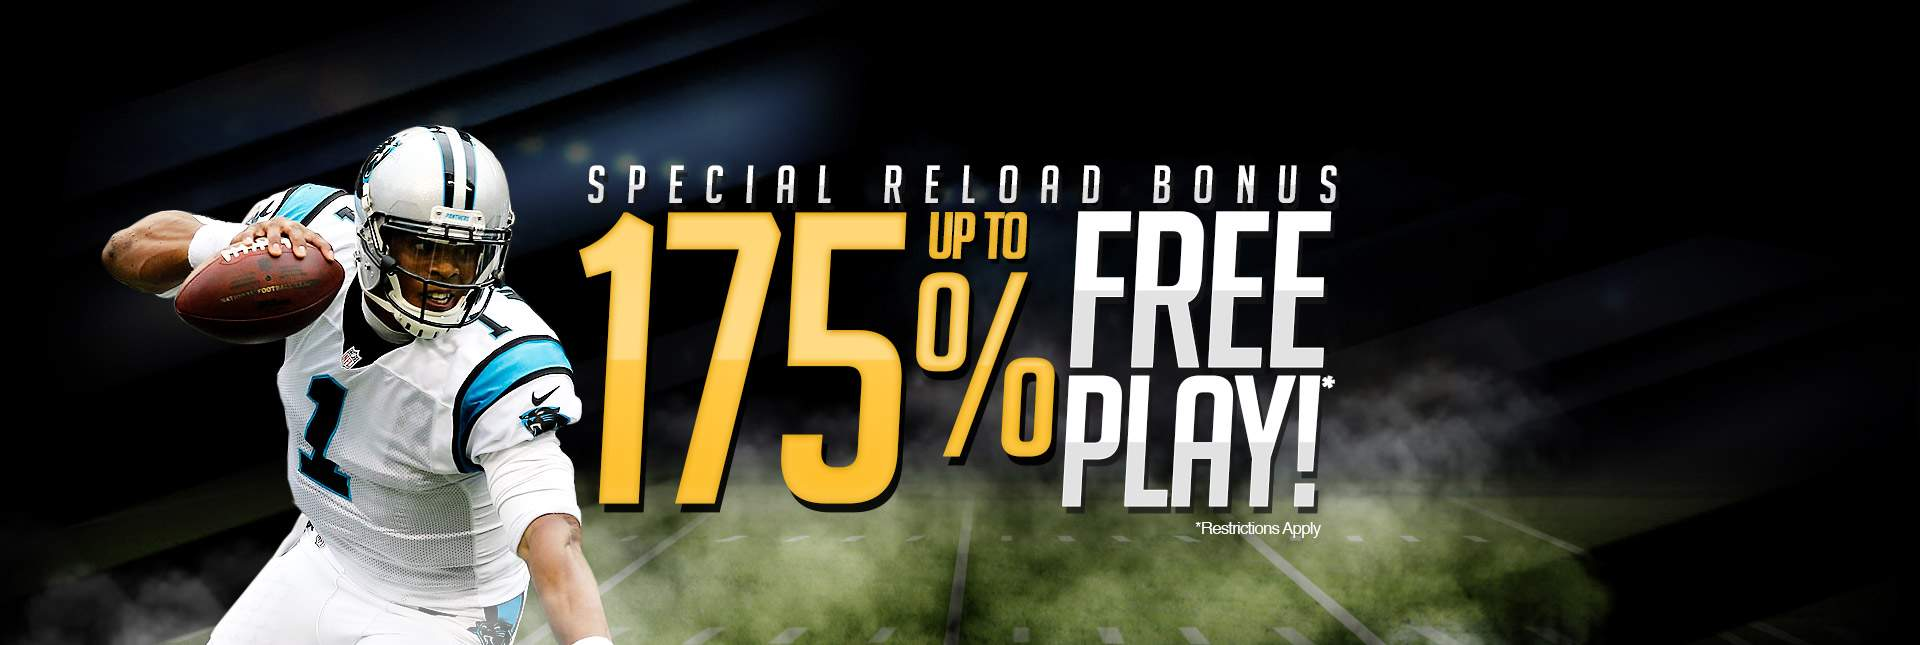 Up To 175% Free Play